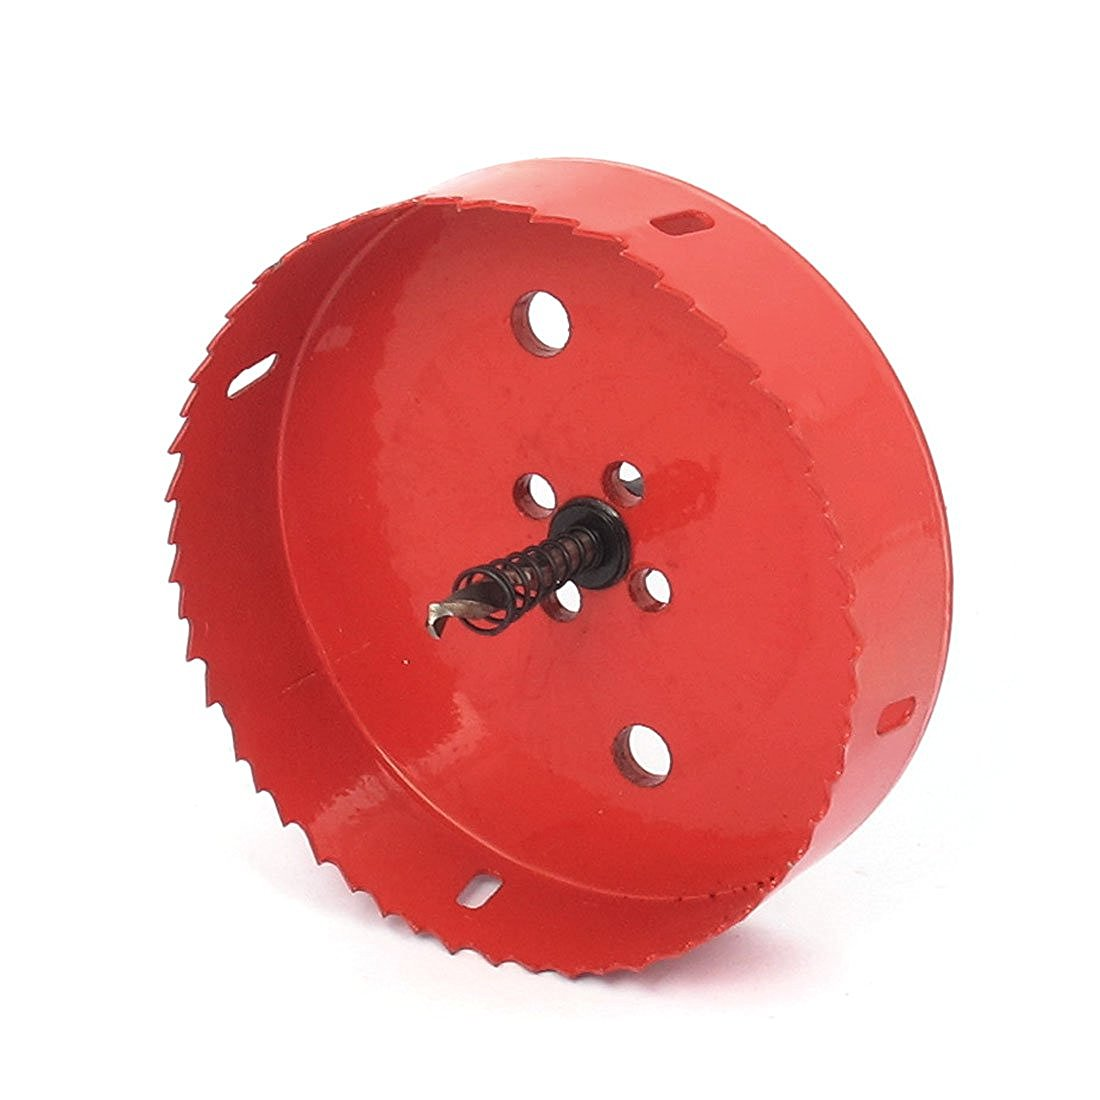 6mm Drill Bit 130mm Cutting Diameter Hole Saw Red for Drilling Wood<br><br>Aliexpress